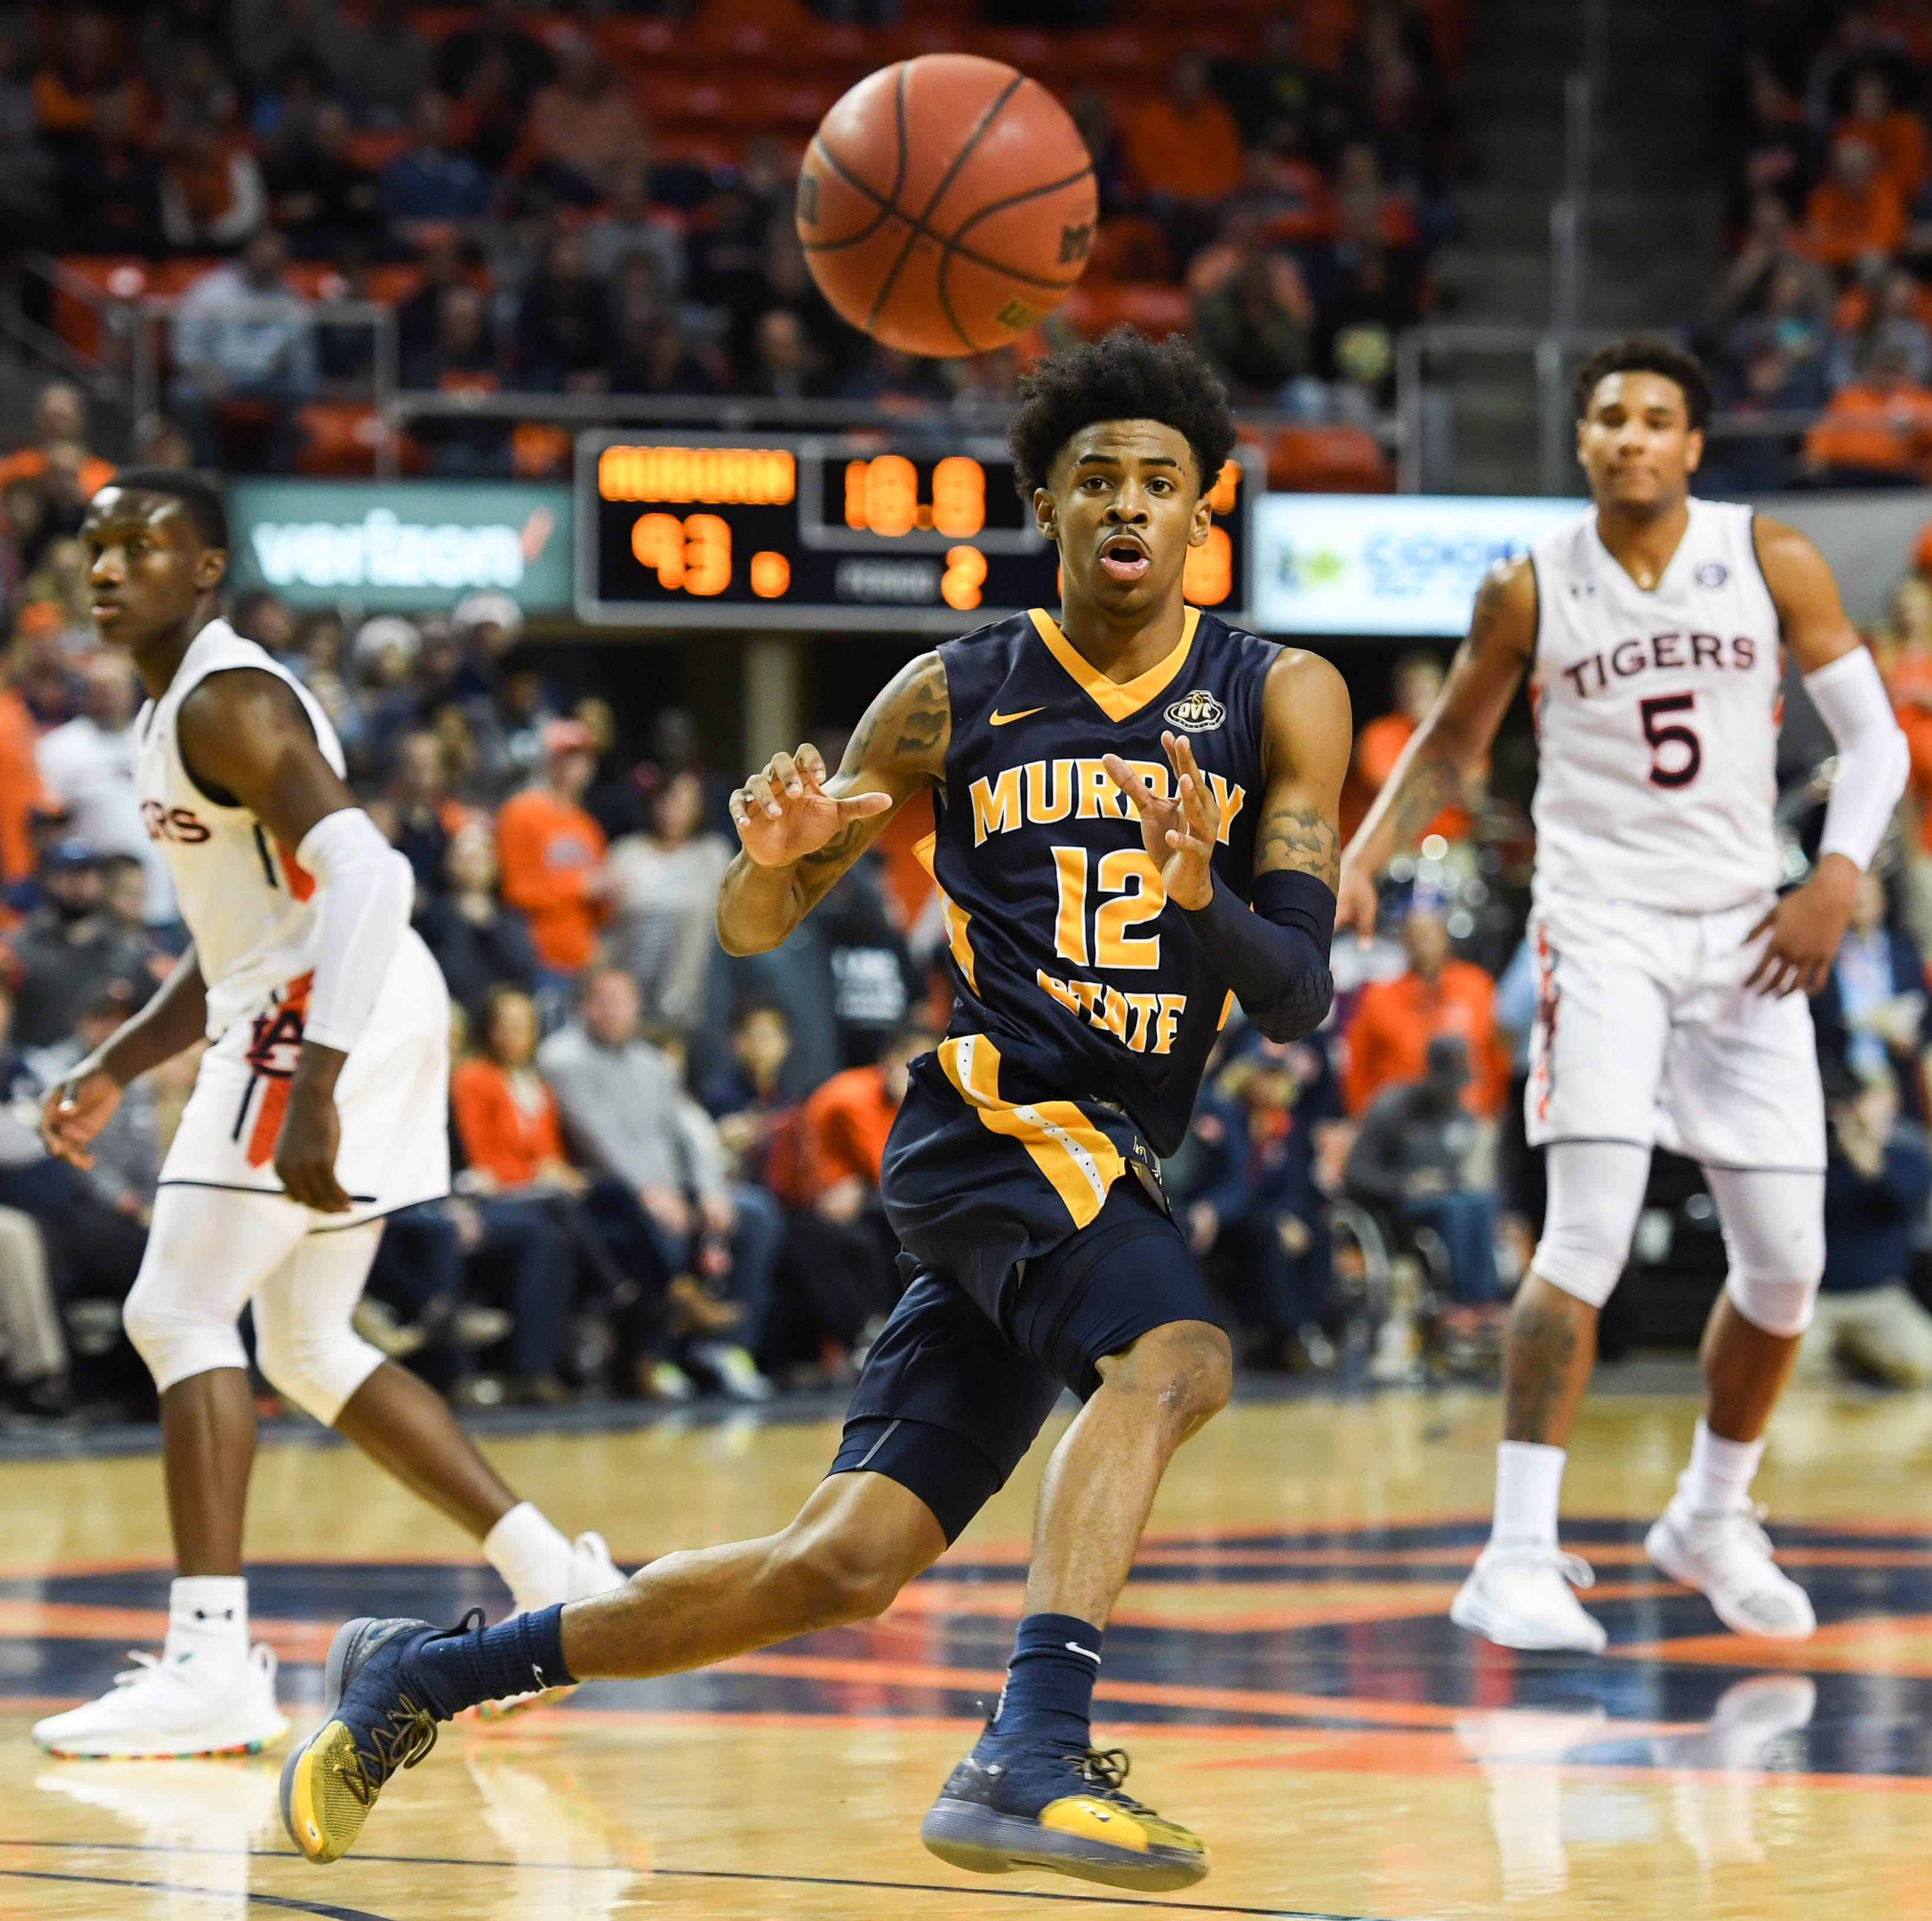 2019 NBA draft: A look at potential point guard targets for the Suns